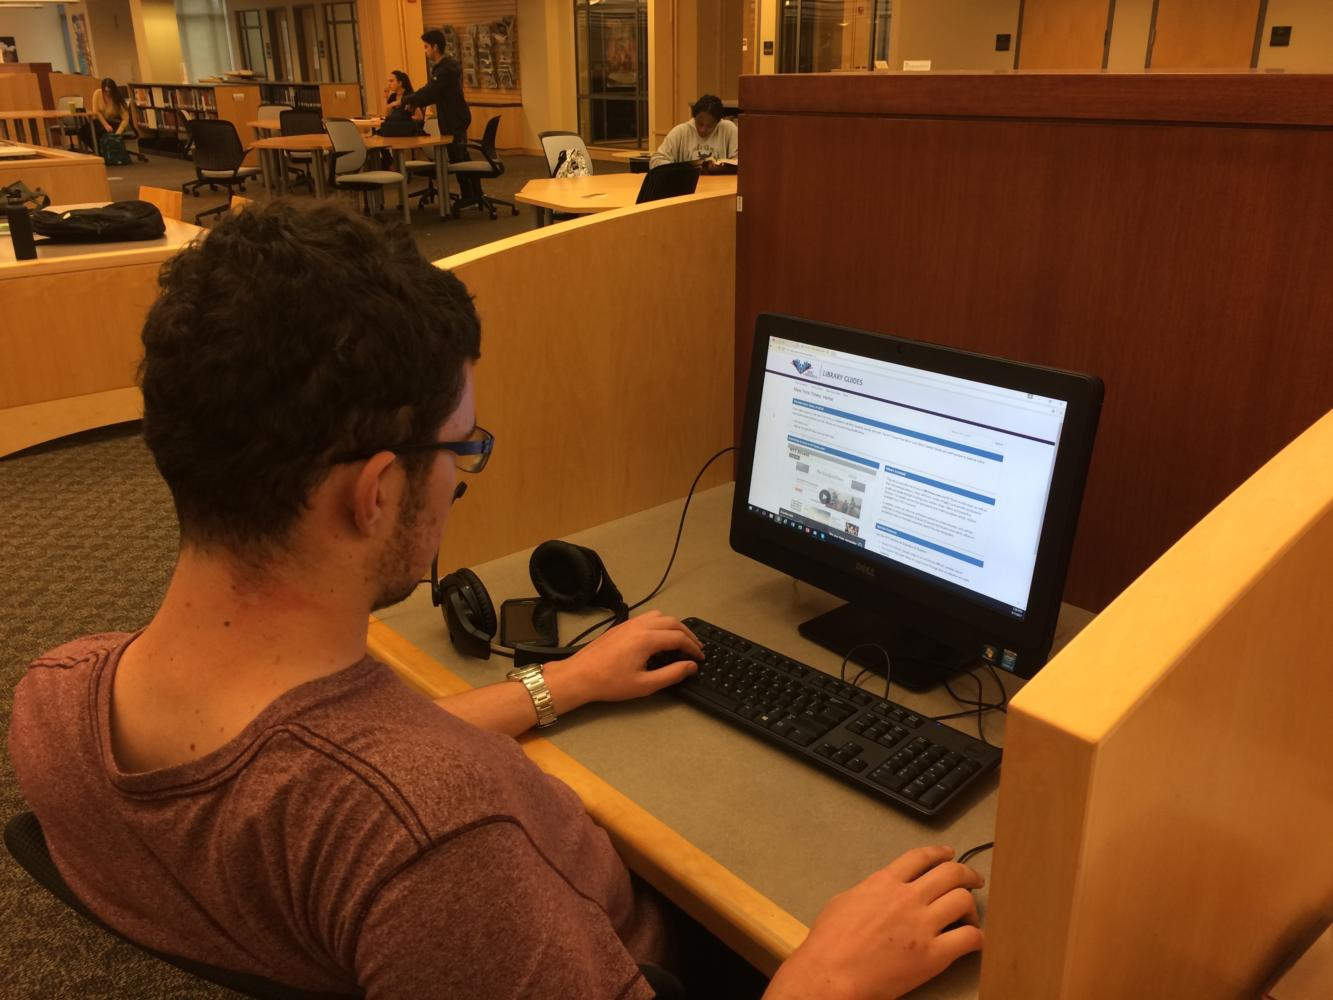 SRJC student Cameron Gordon-Miller, 20, signs up for his free digital subscription to the NY Times. Available for all SRJC students.